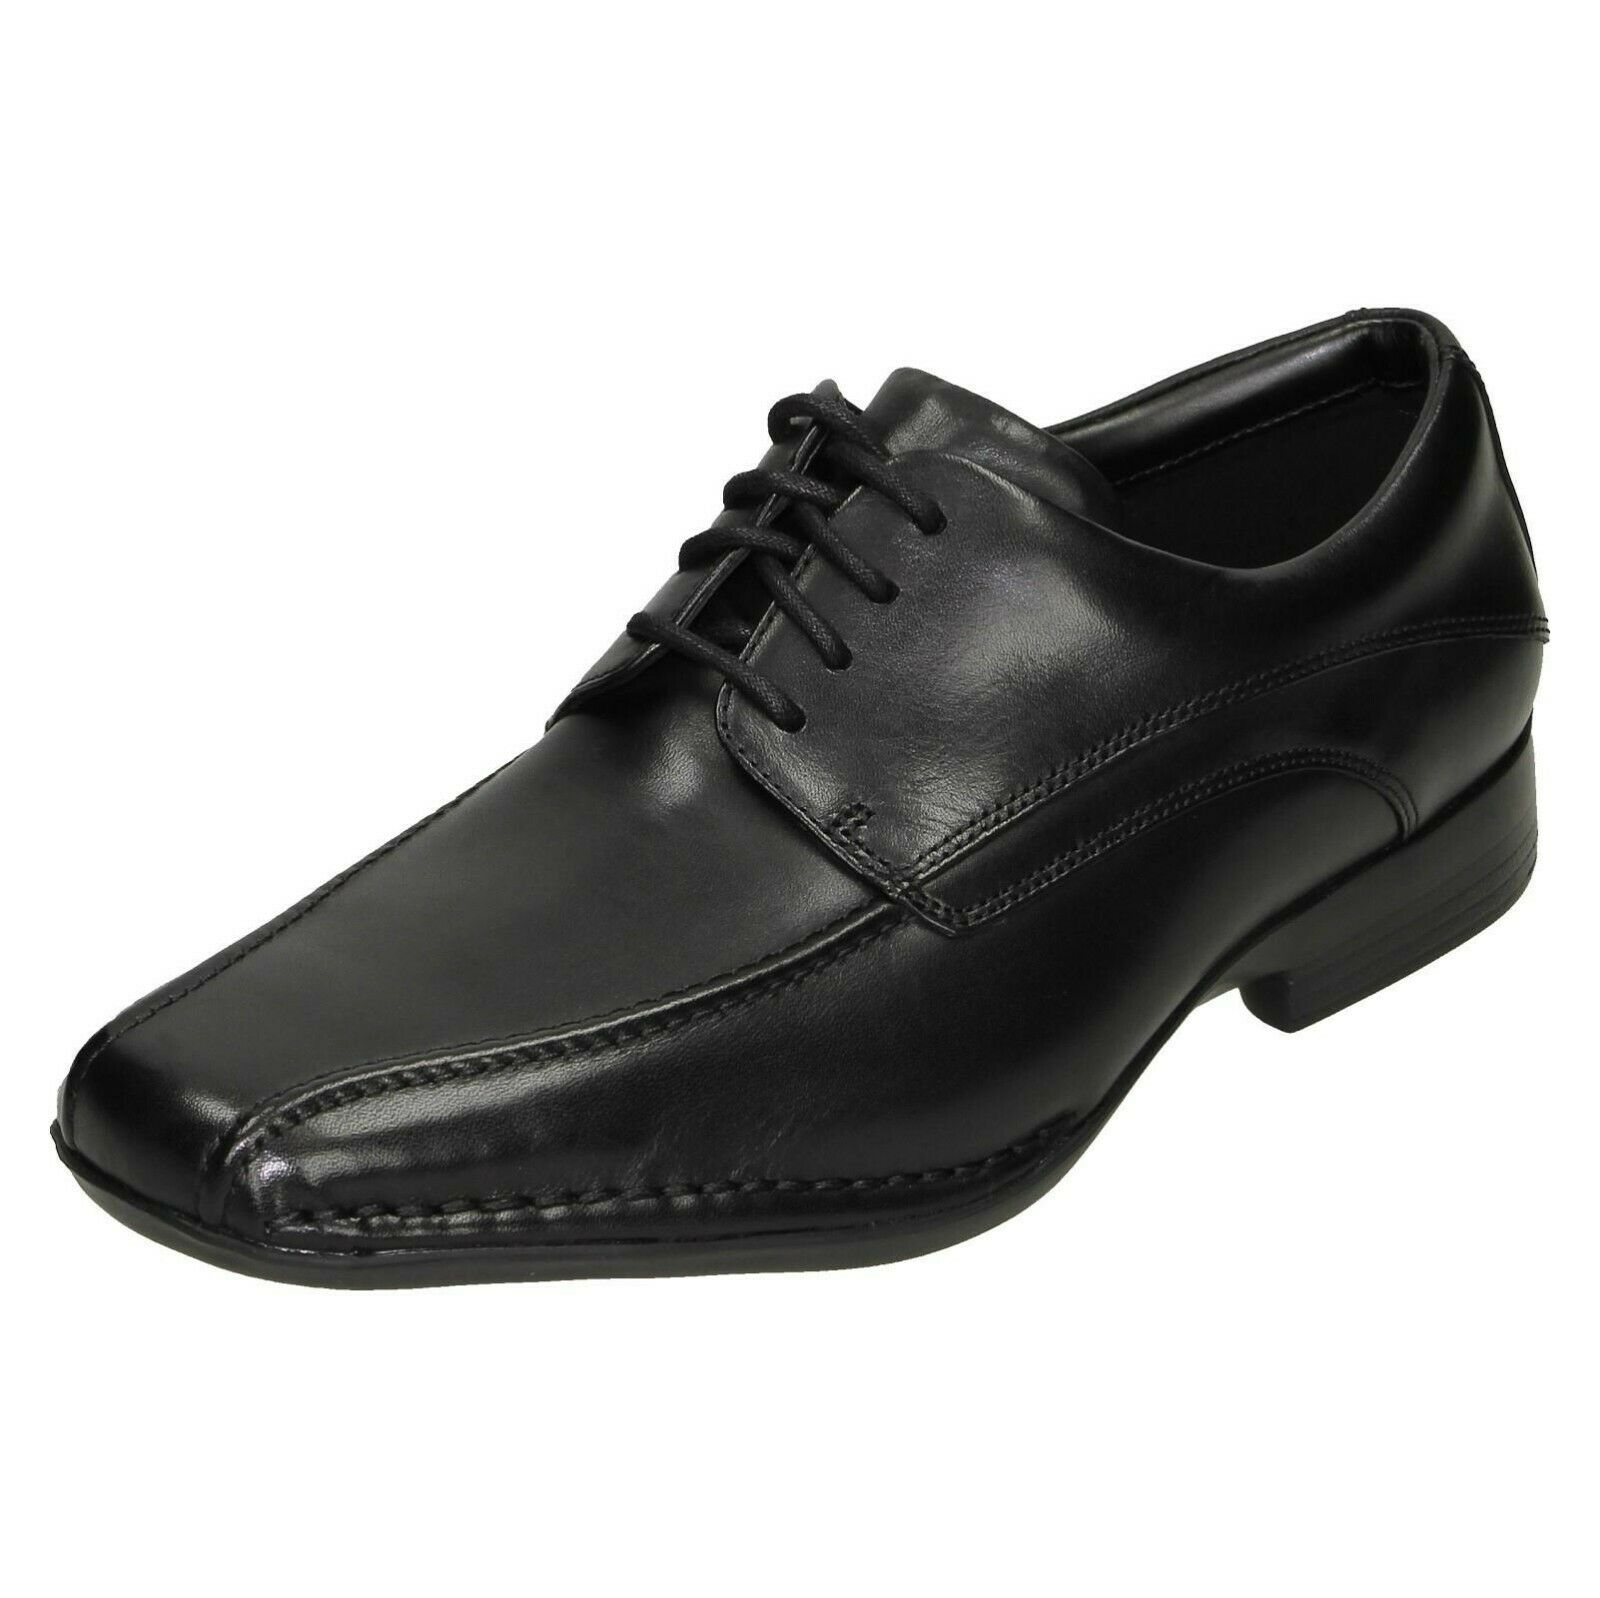 MENS CLARKS SMART LEATHER LACE UP LIGHTWEIGHT EVERYDAY FORMAL schuhe FRANCIS LACE